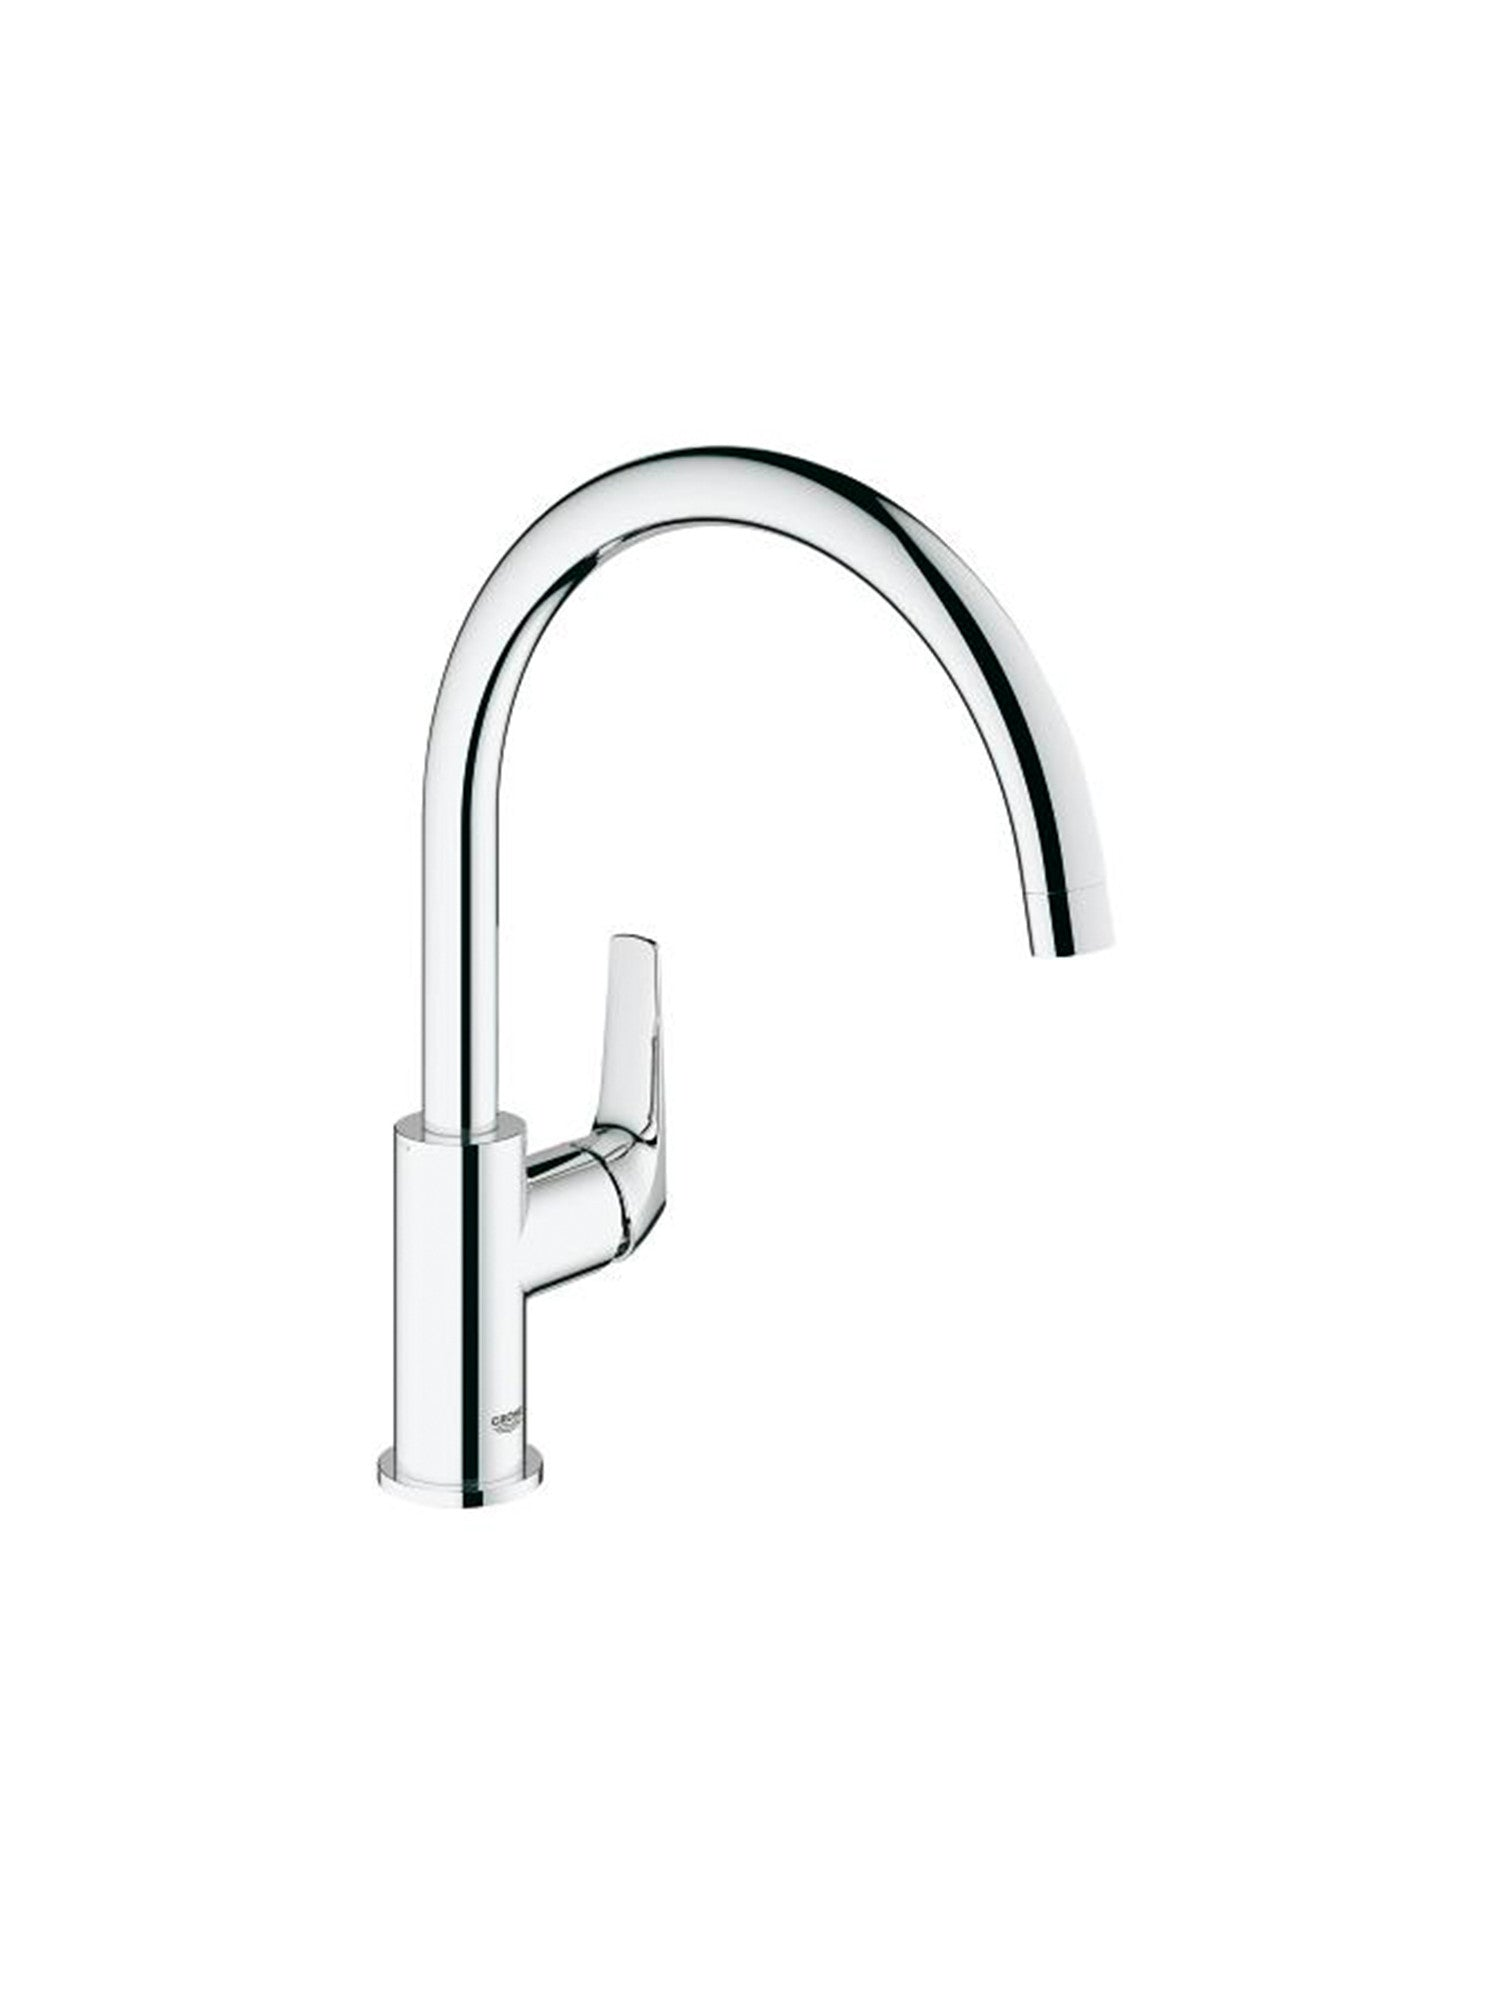 BauFlow Kitchen Sink Mixer #31230000